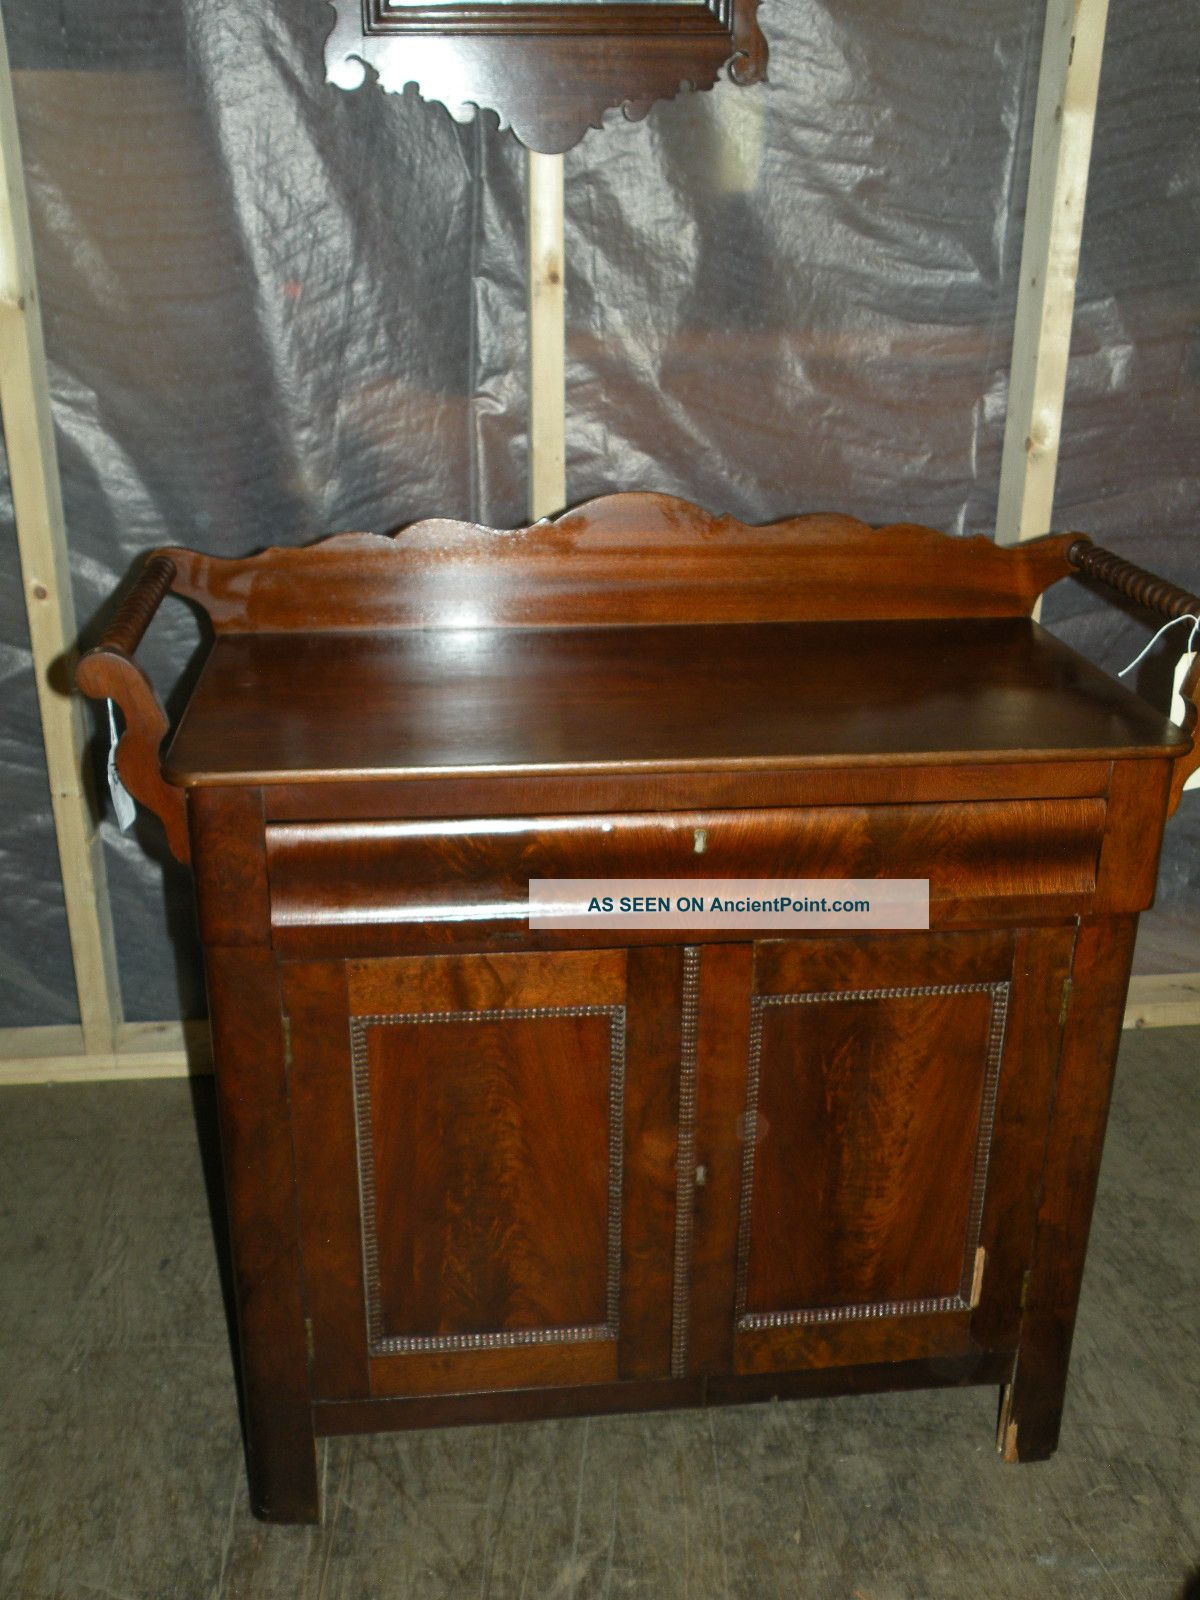 old fashioned bedroom 1800s viewing gallery